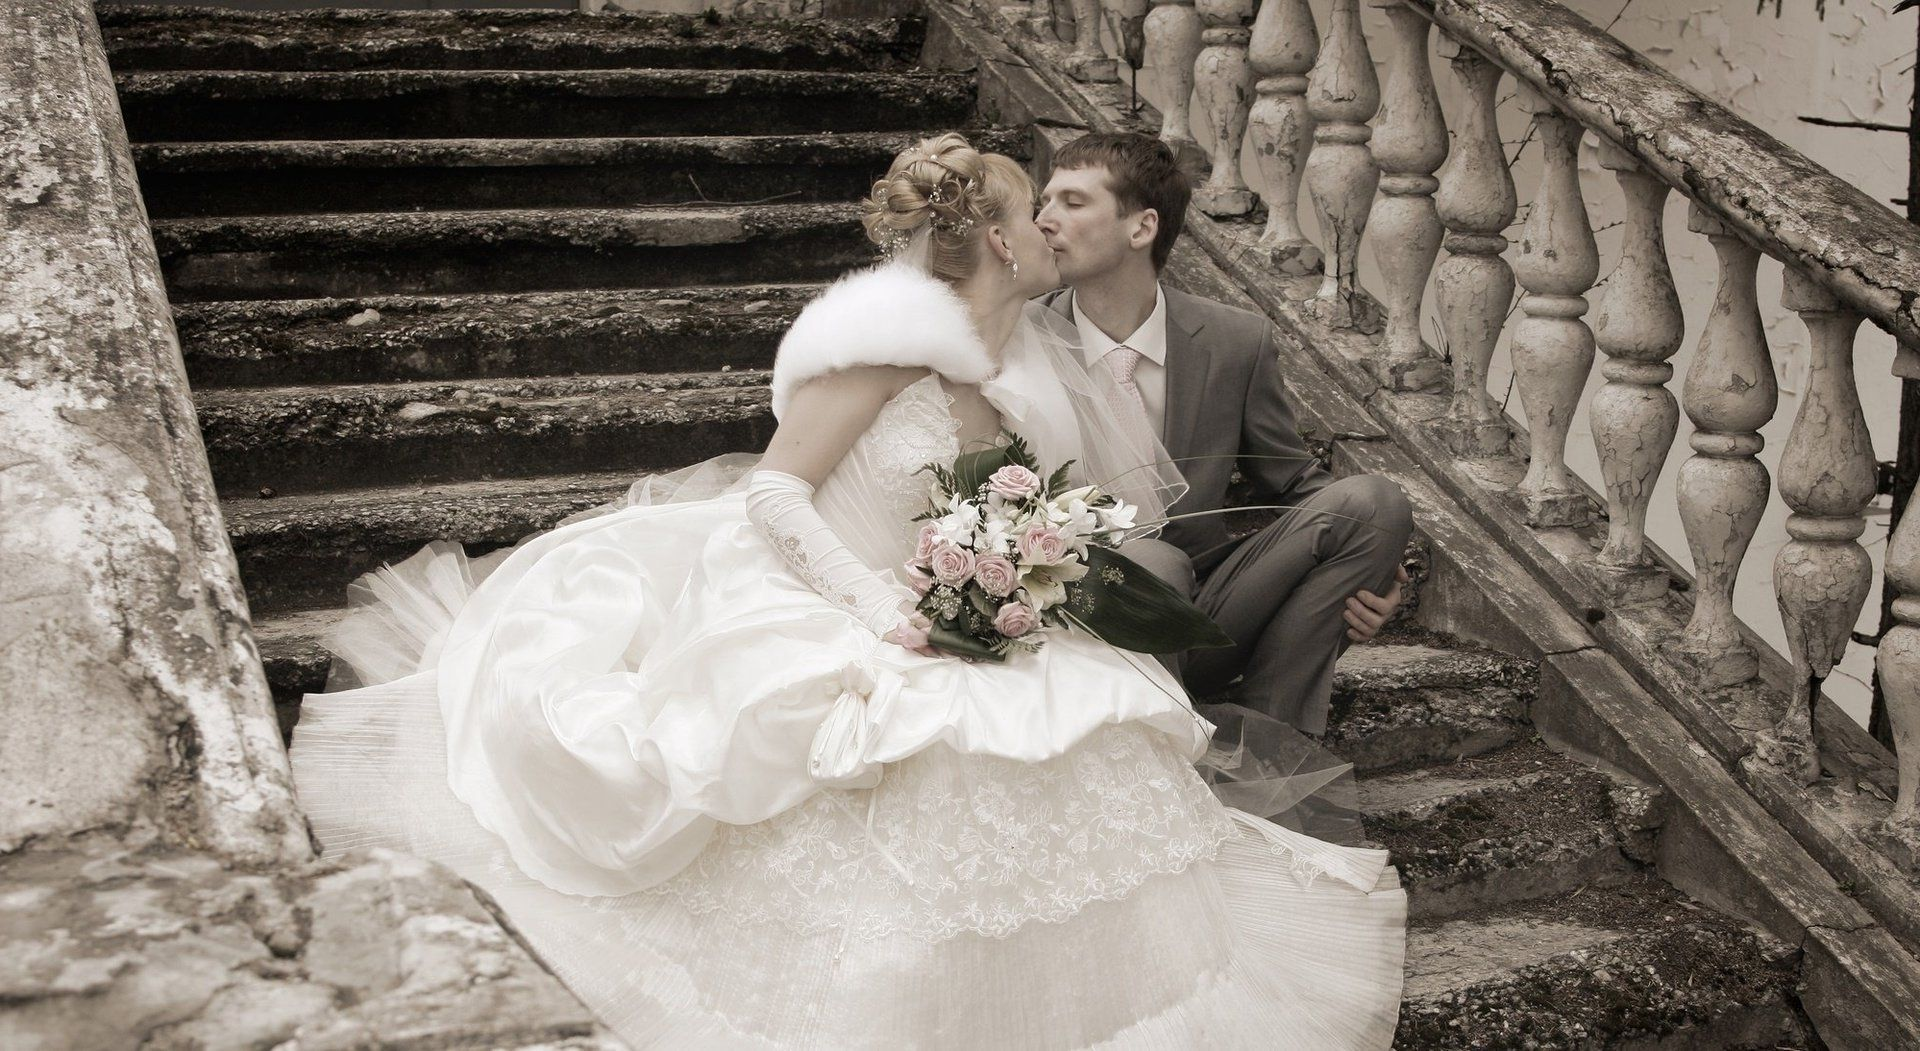 Wedding Dresses In Leeds West Yorkshire | Wedding Dress | Pinterest ...